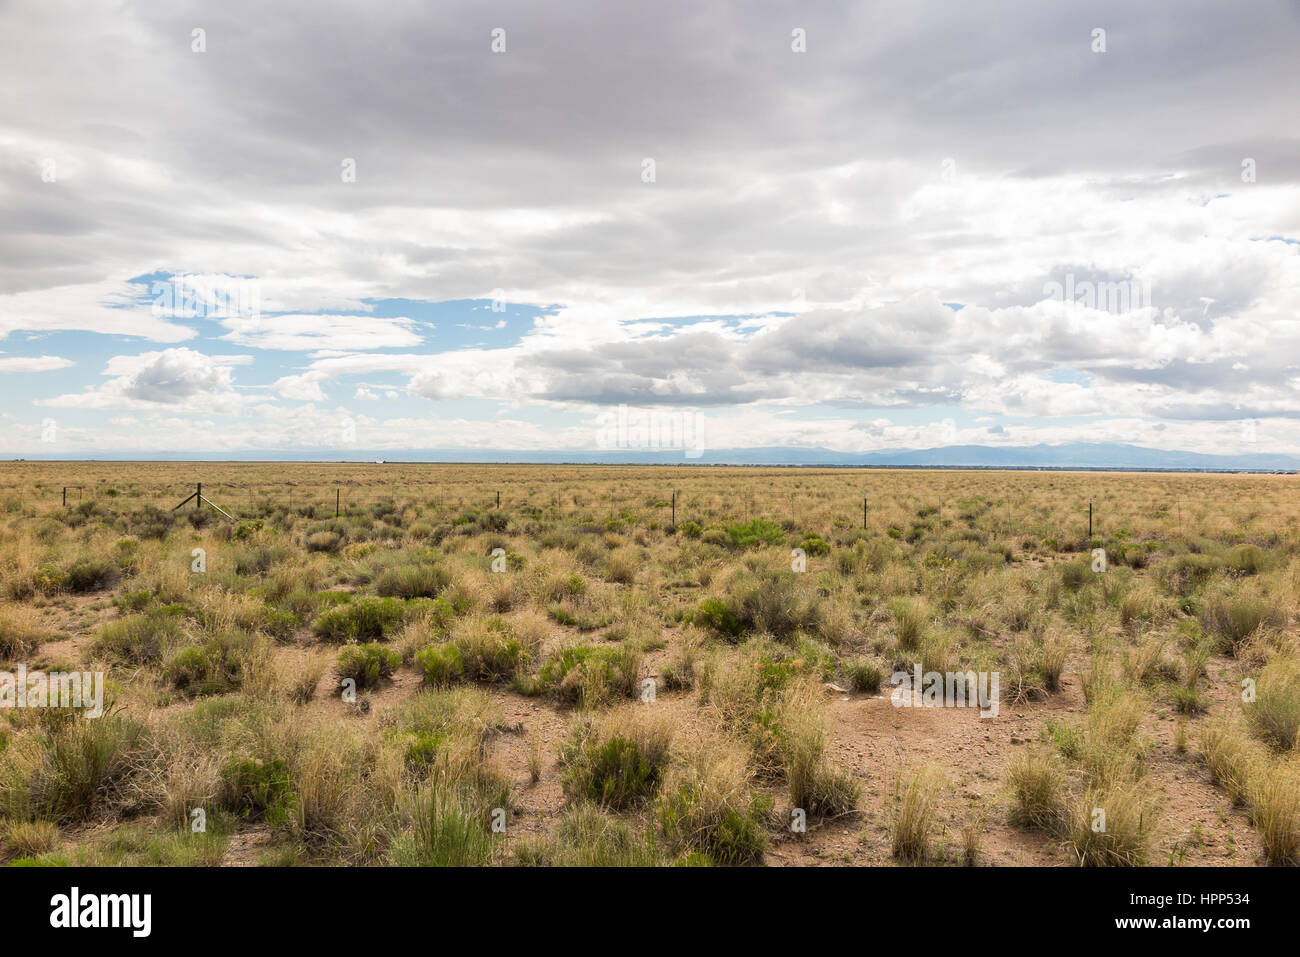 Grass farm field, flat plains, with a partly cloudy sky - Stock Image